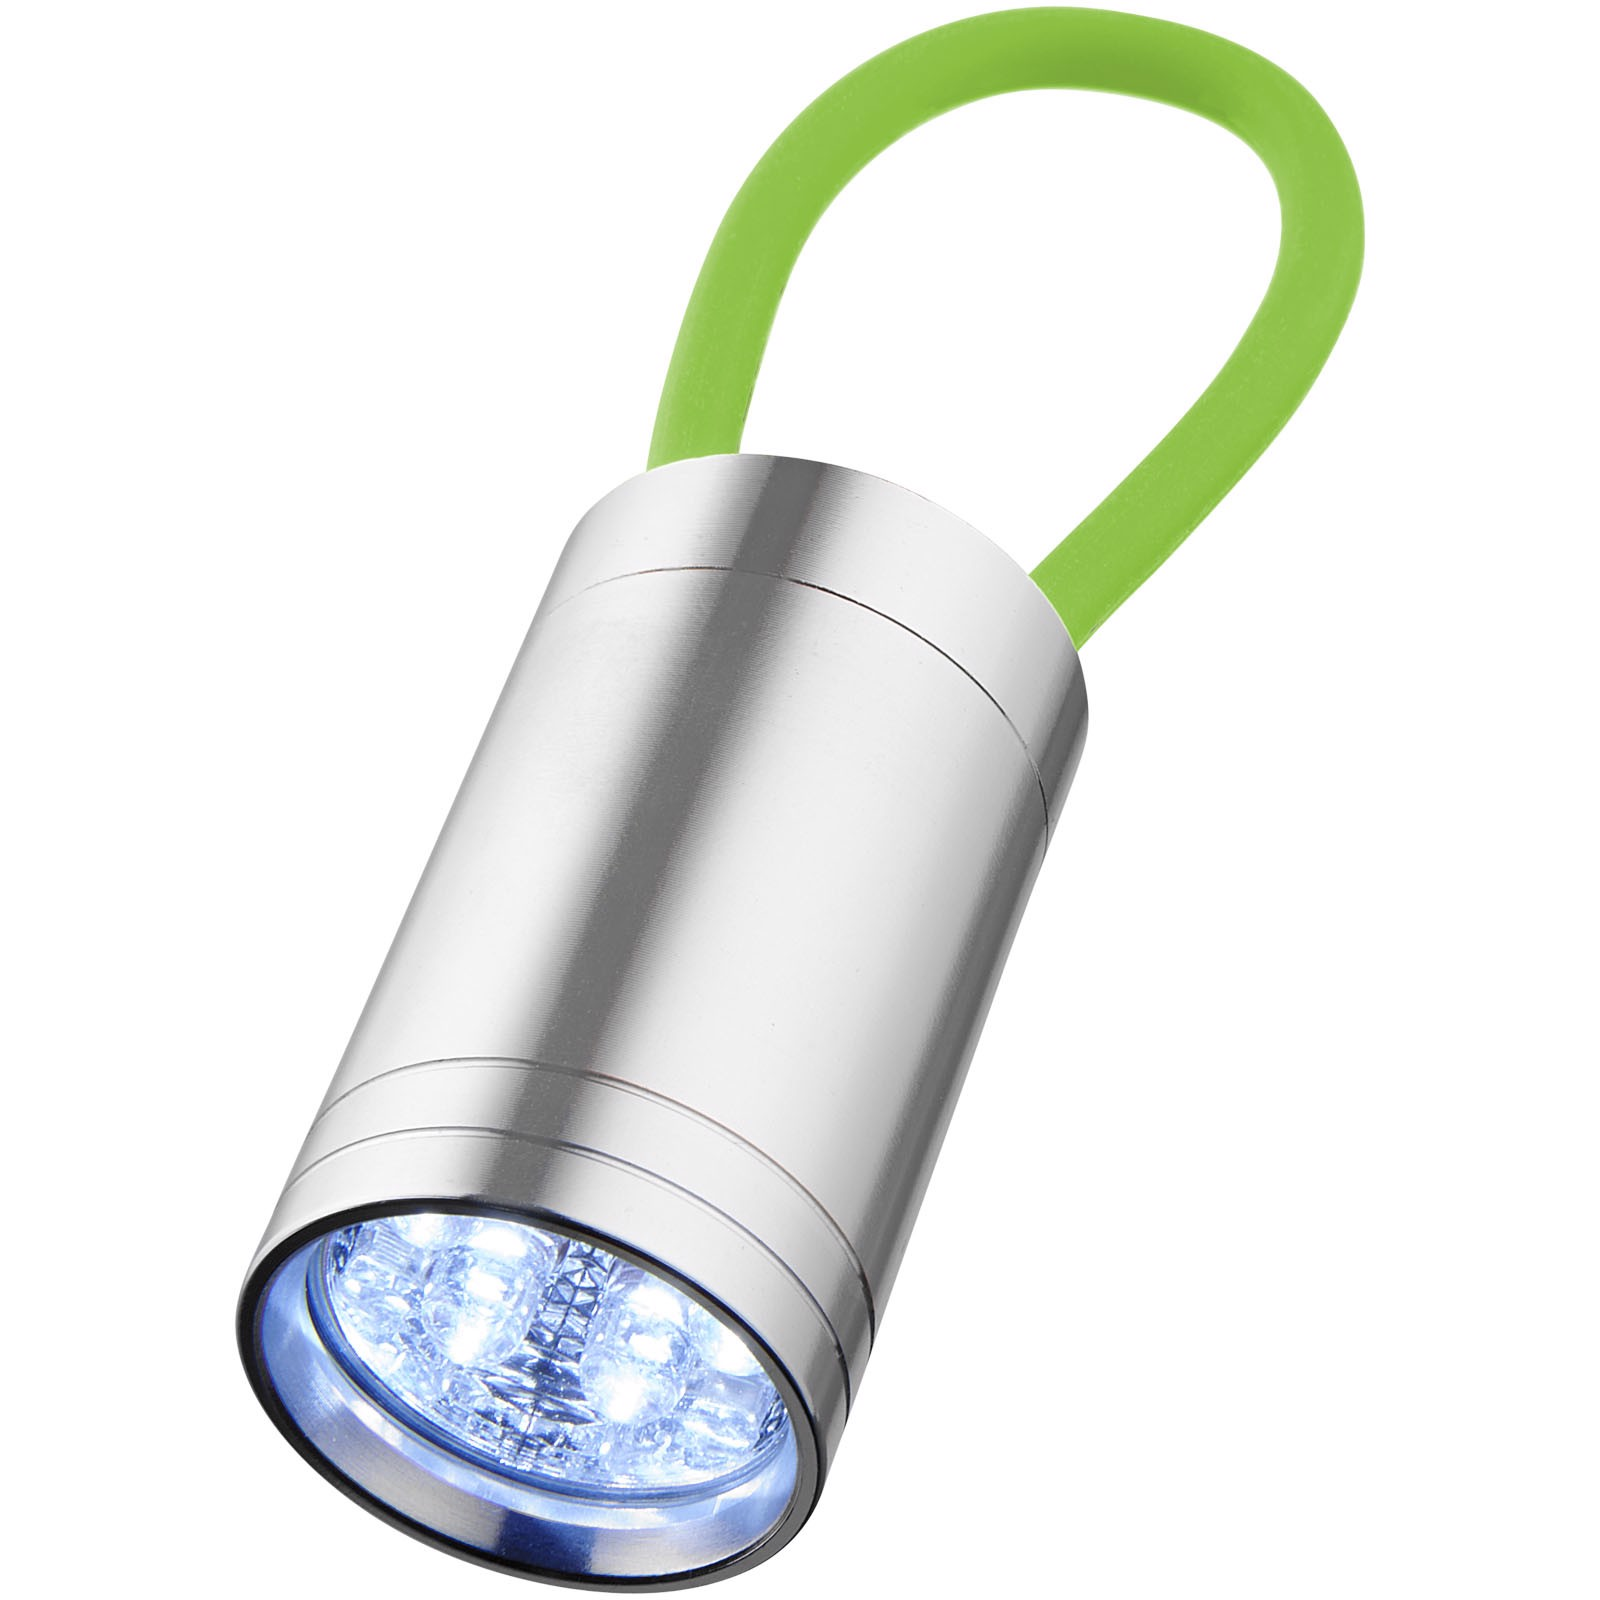 Vela 6-LED torch with glow strap - Lime